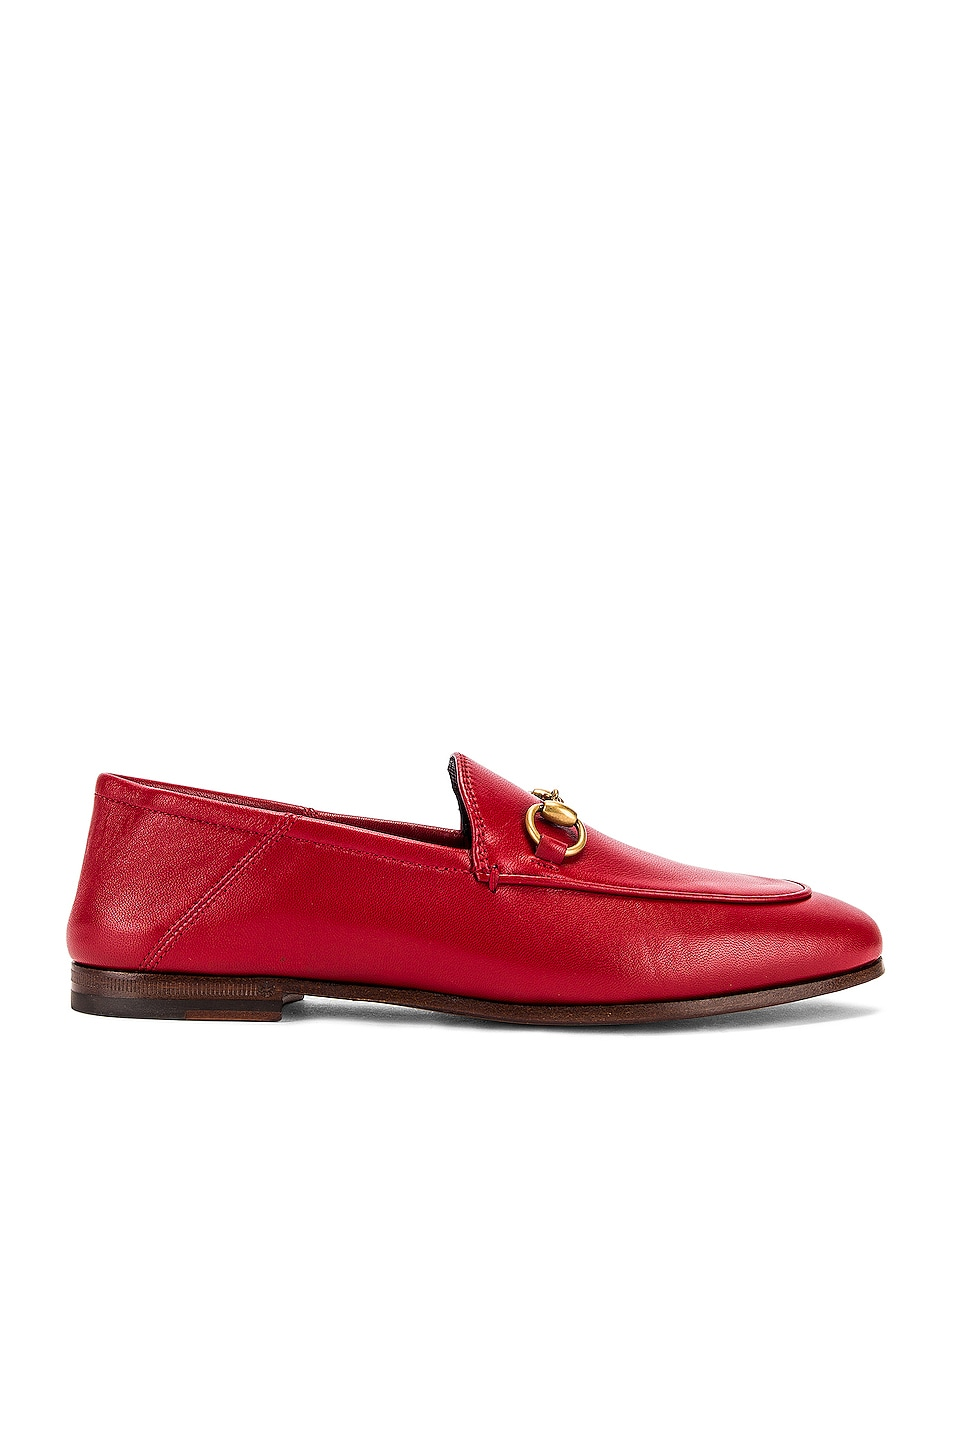 Image 2 of Gucci Leather Horsebit Loafers in Hibiscus Red